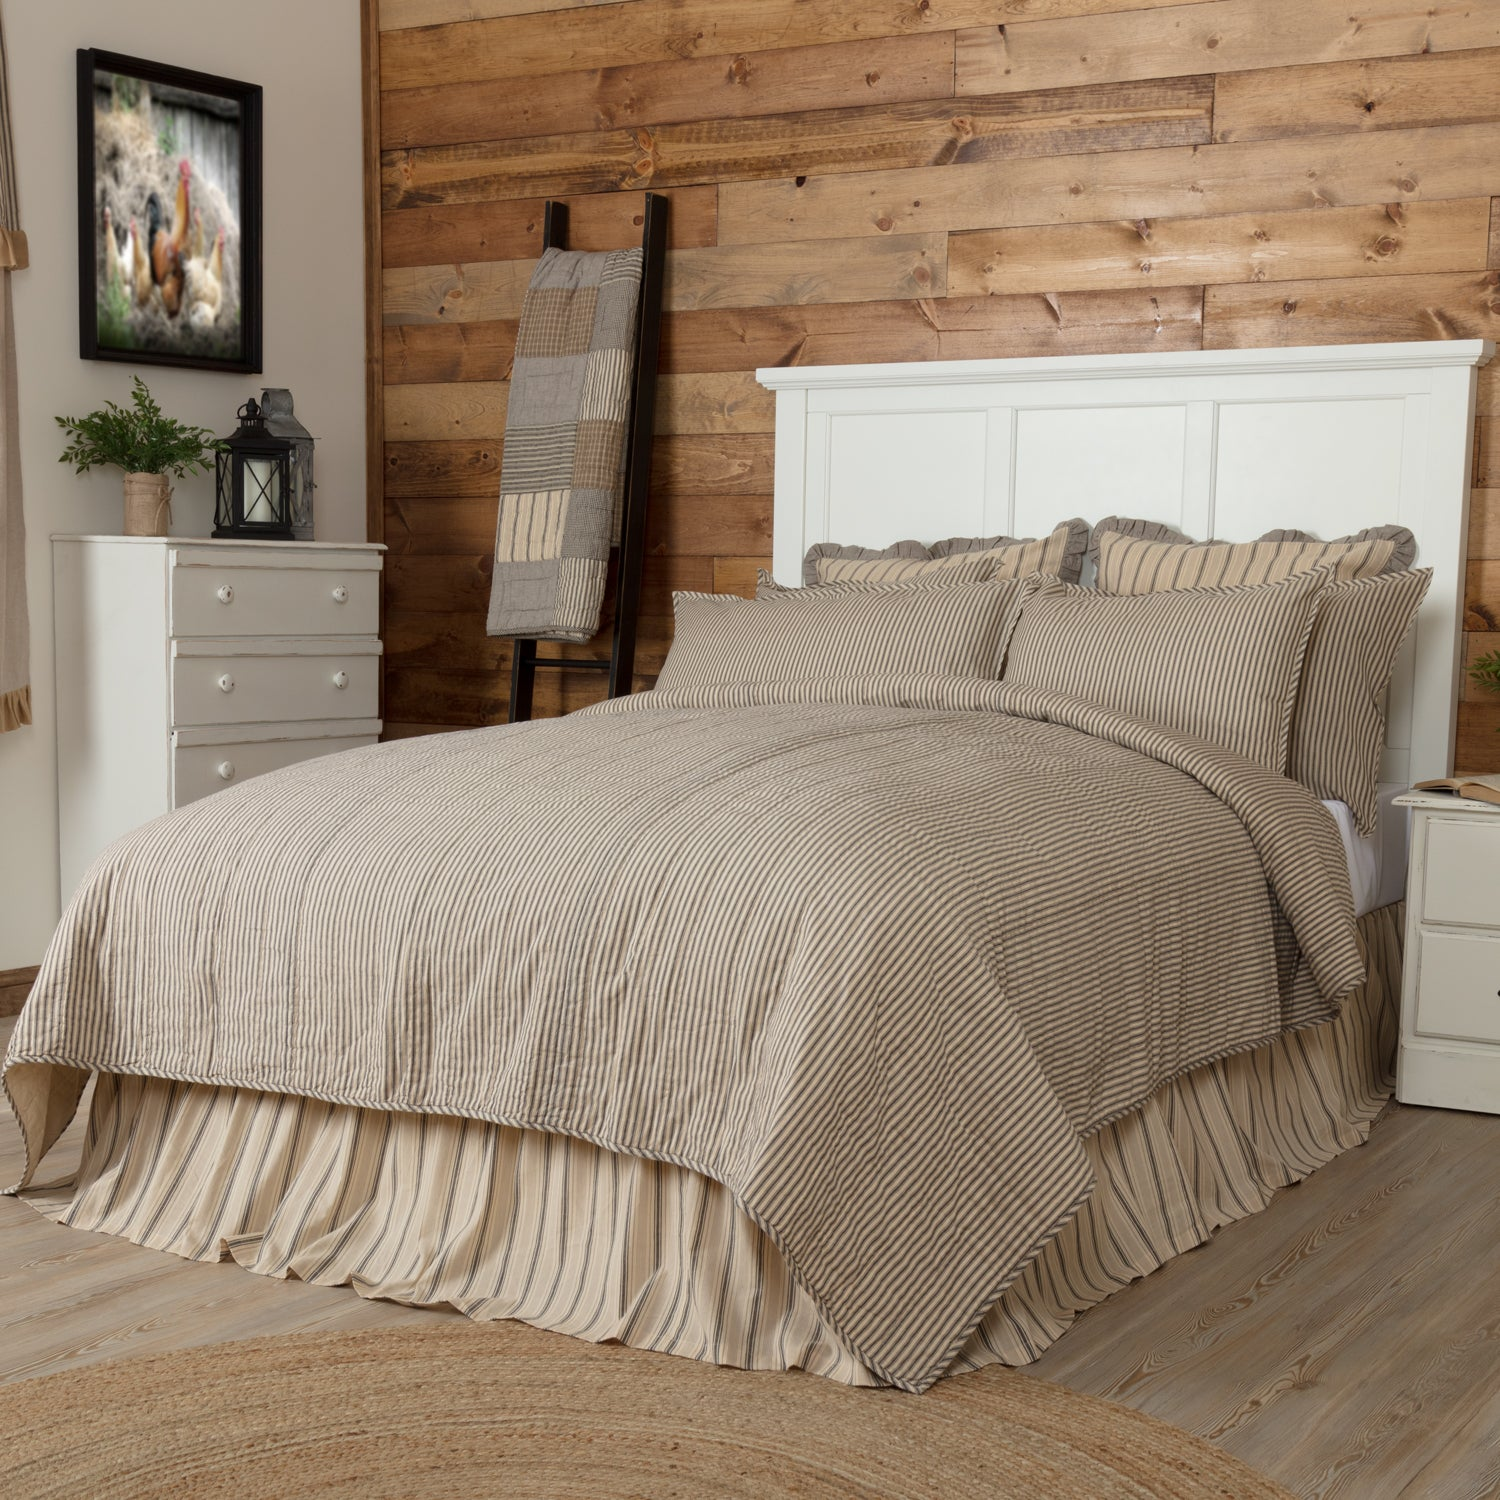 Sawyer Mill Charcoal Ticking Stripe Twin Quilt Coverlet 68Wx86L - Woodrol